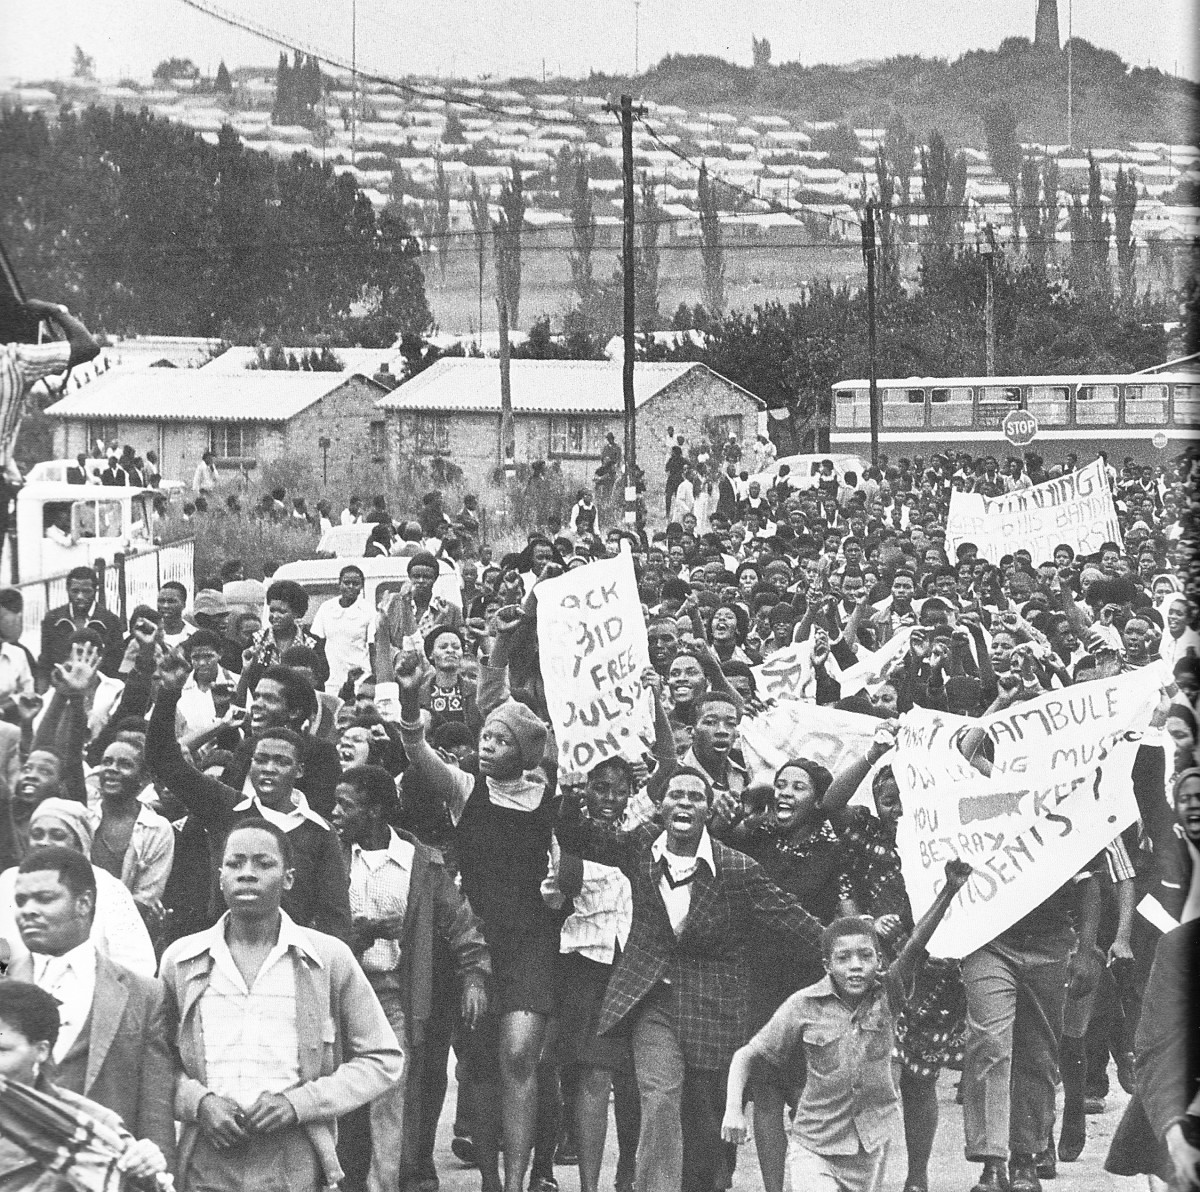 A large column of students marching in an orderly manner and in high spirits carrying their placards, which were simple and to the point messages